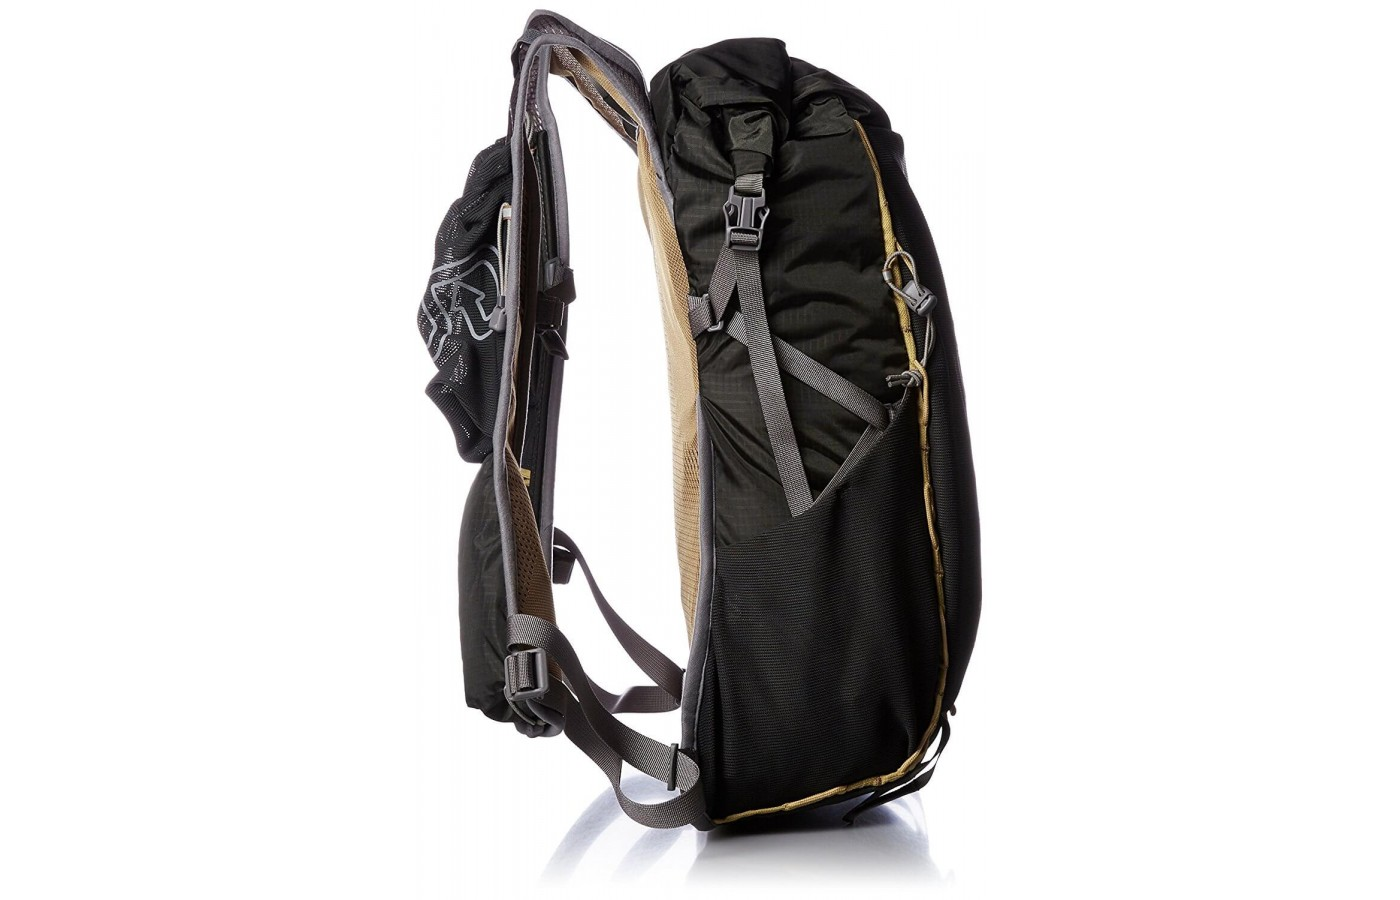 Ultimate Direction Fastpack 15 Angled